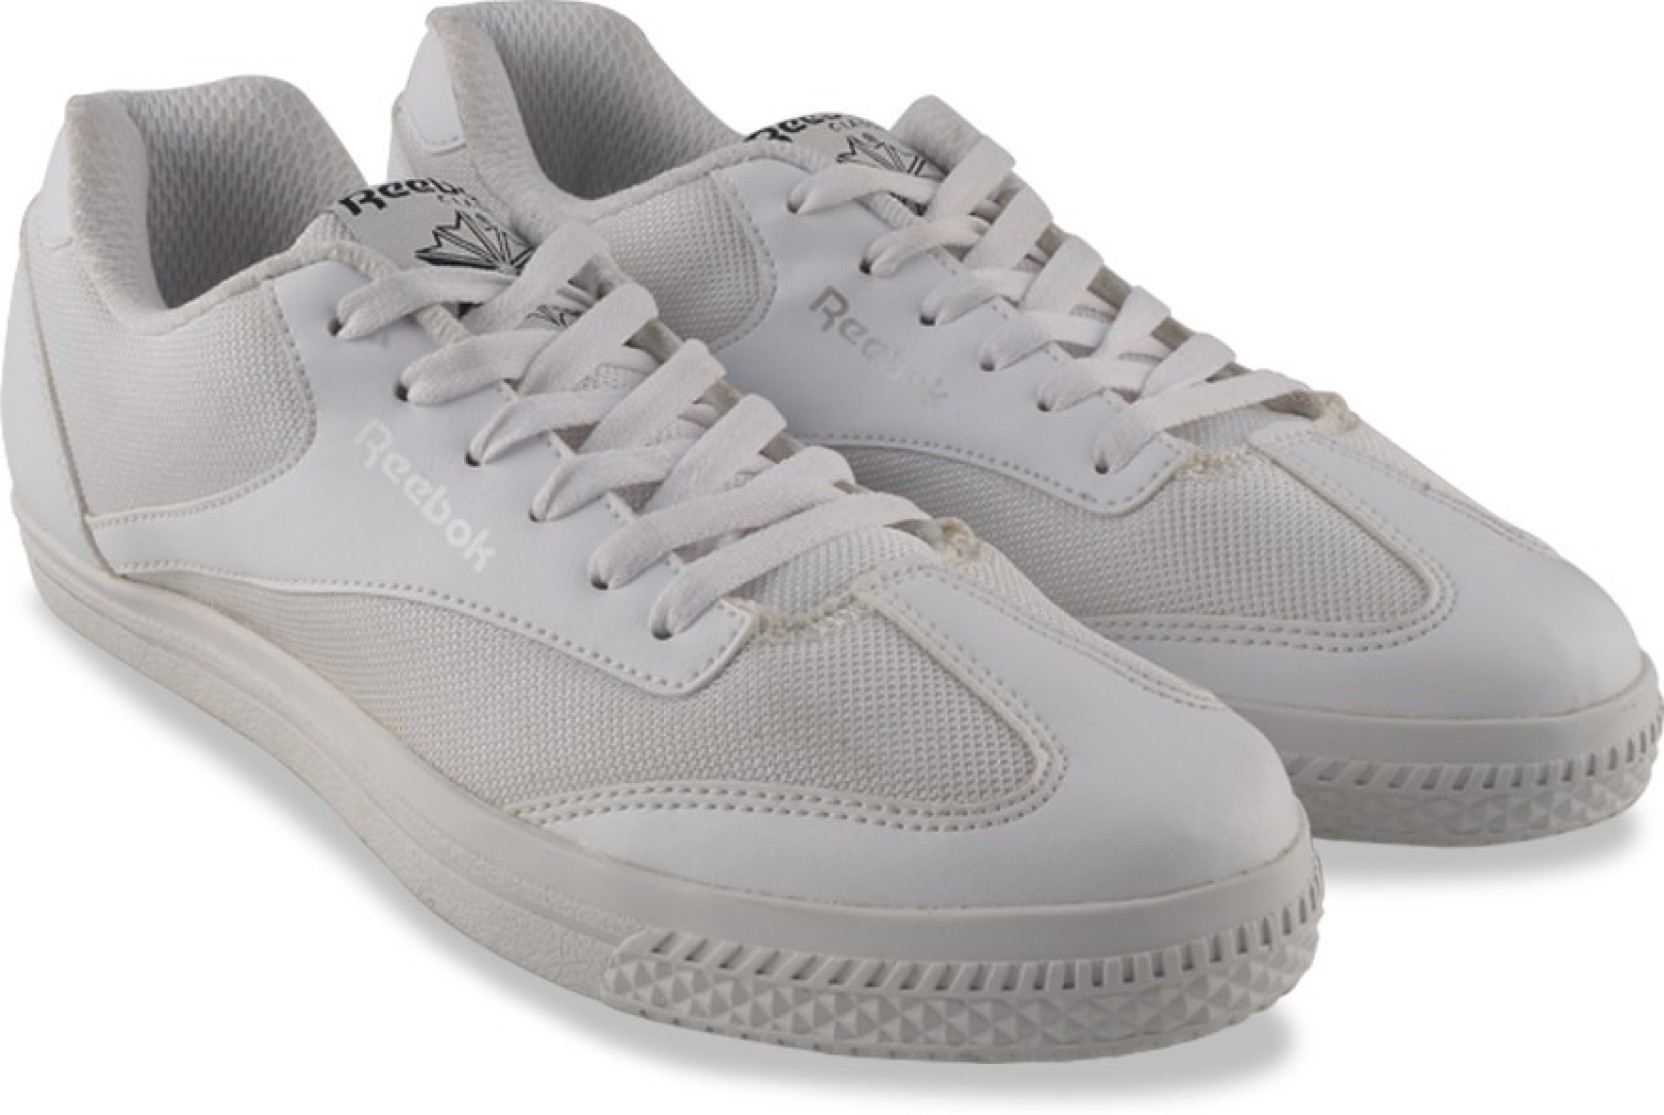 fbf3c8524b6 REEBOK CLASSICS CLASS BUDDY Sneakers For Men - Buy WHITE/WHITE Color ...